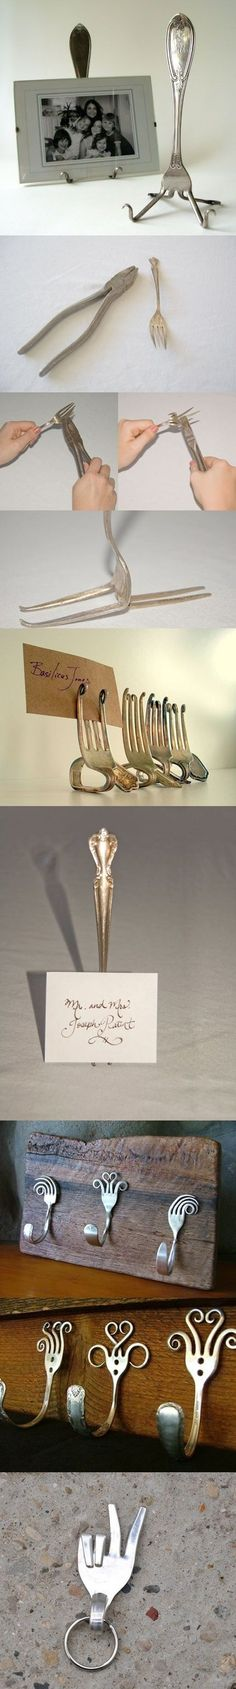 Creative fork DIY projects